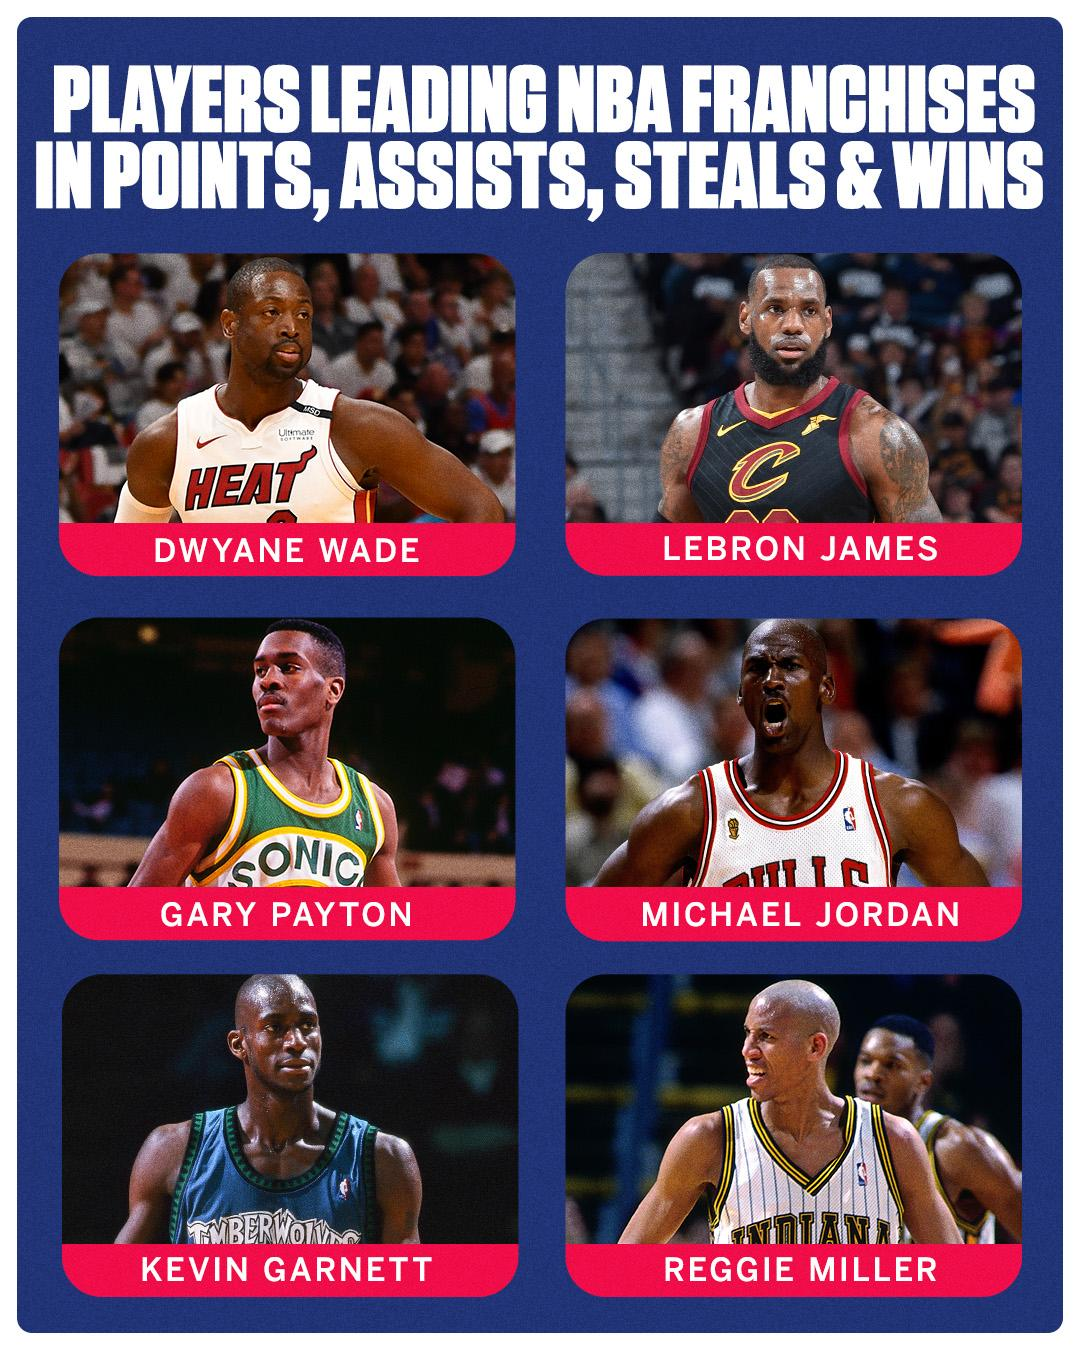 Few people have done what @DwyaneWade has done during his time in Miami. (via @EliasSports) https://t.co/1LmPuXoxtg